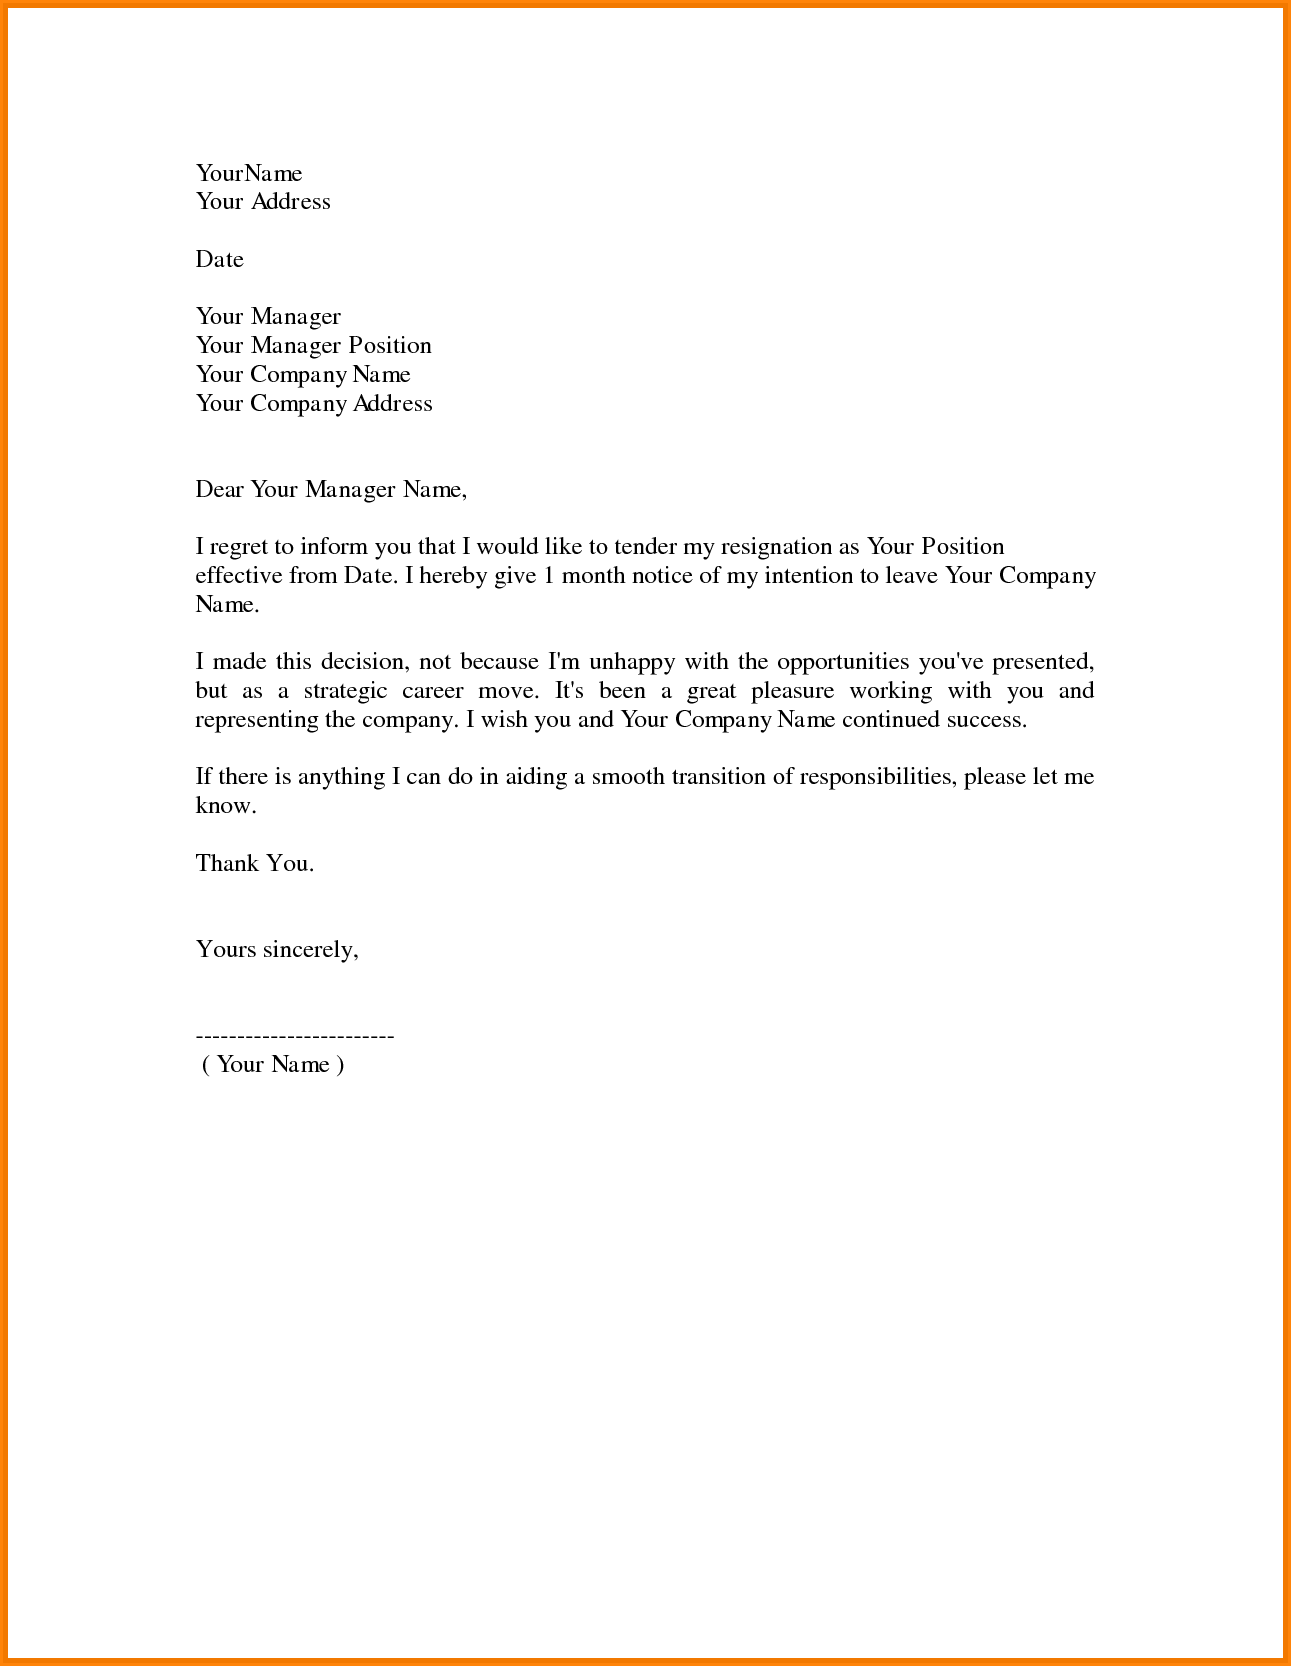 Resignation Letter Format: Easy Possible Contactable Resignation